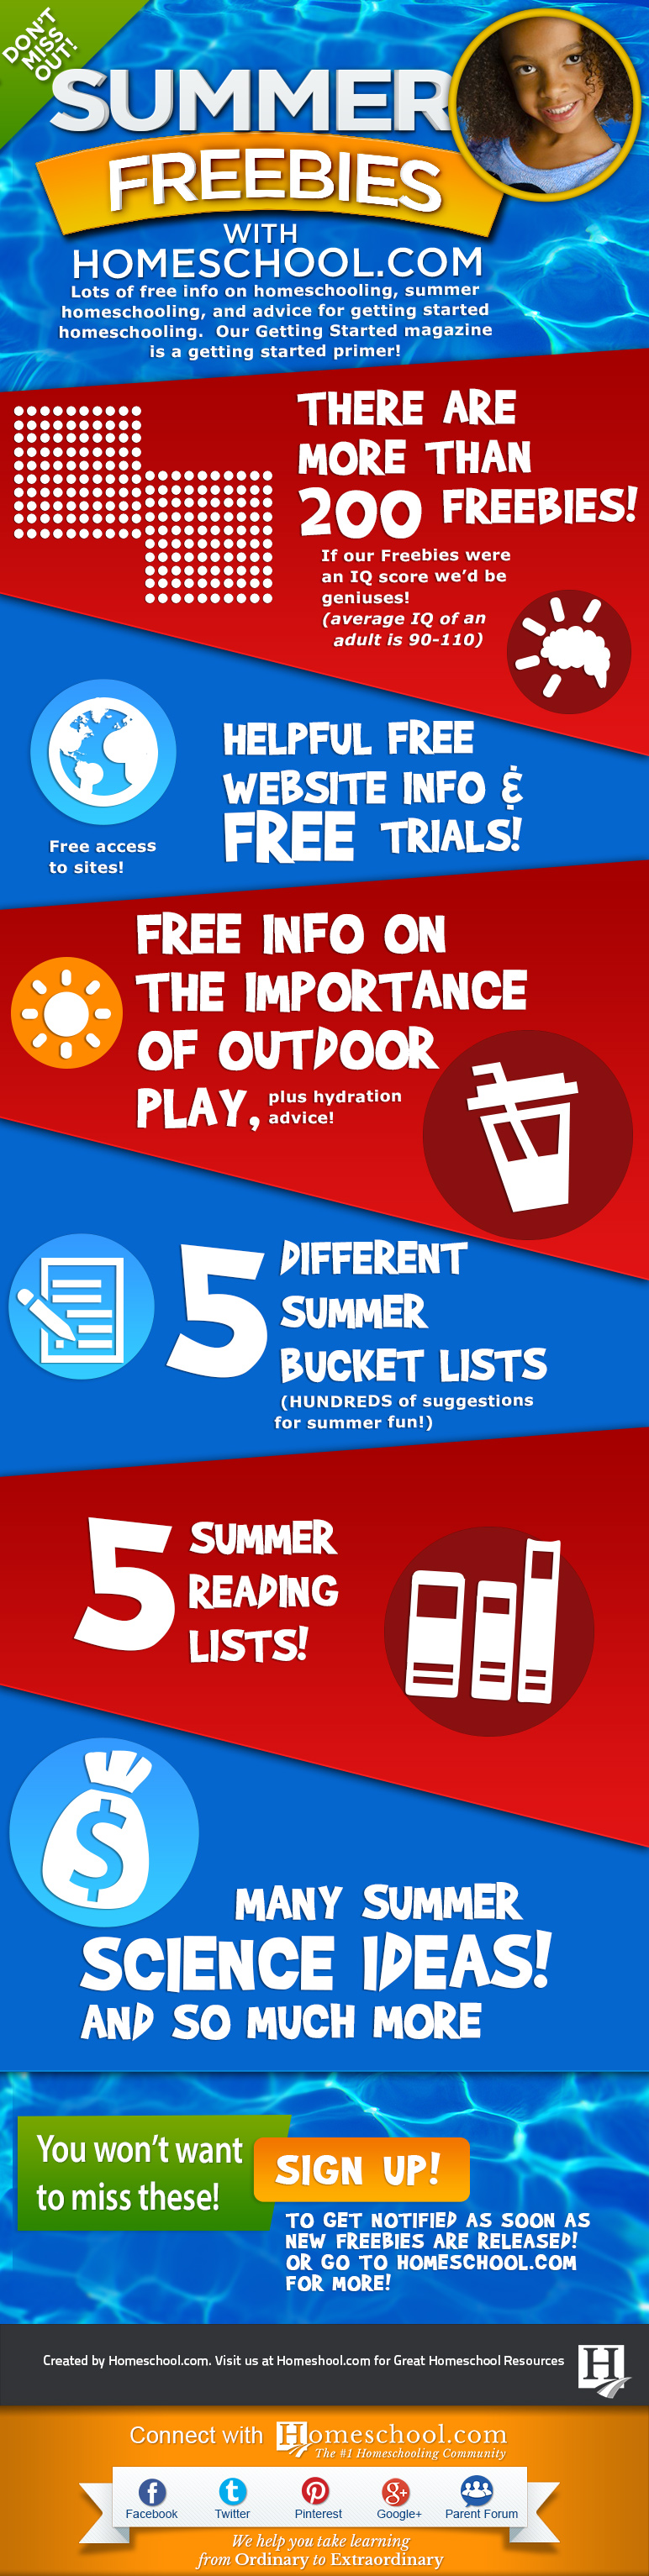 Summer Freebies Infographic